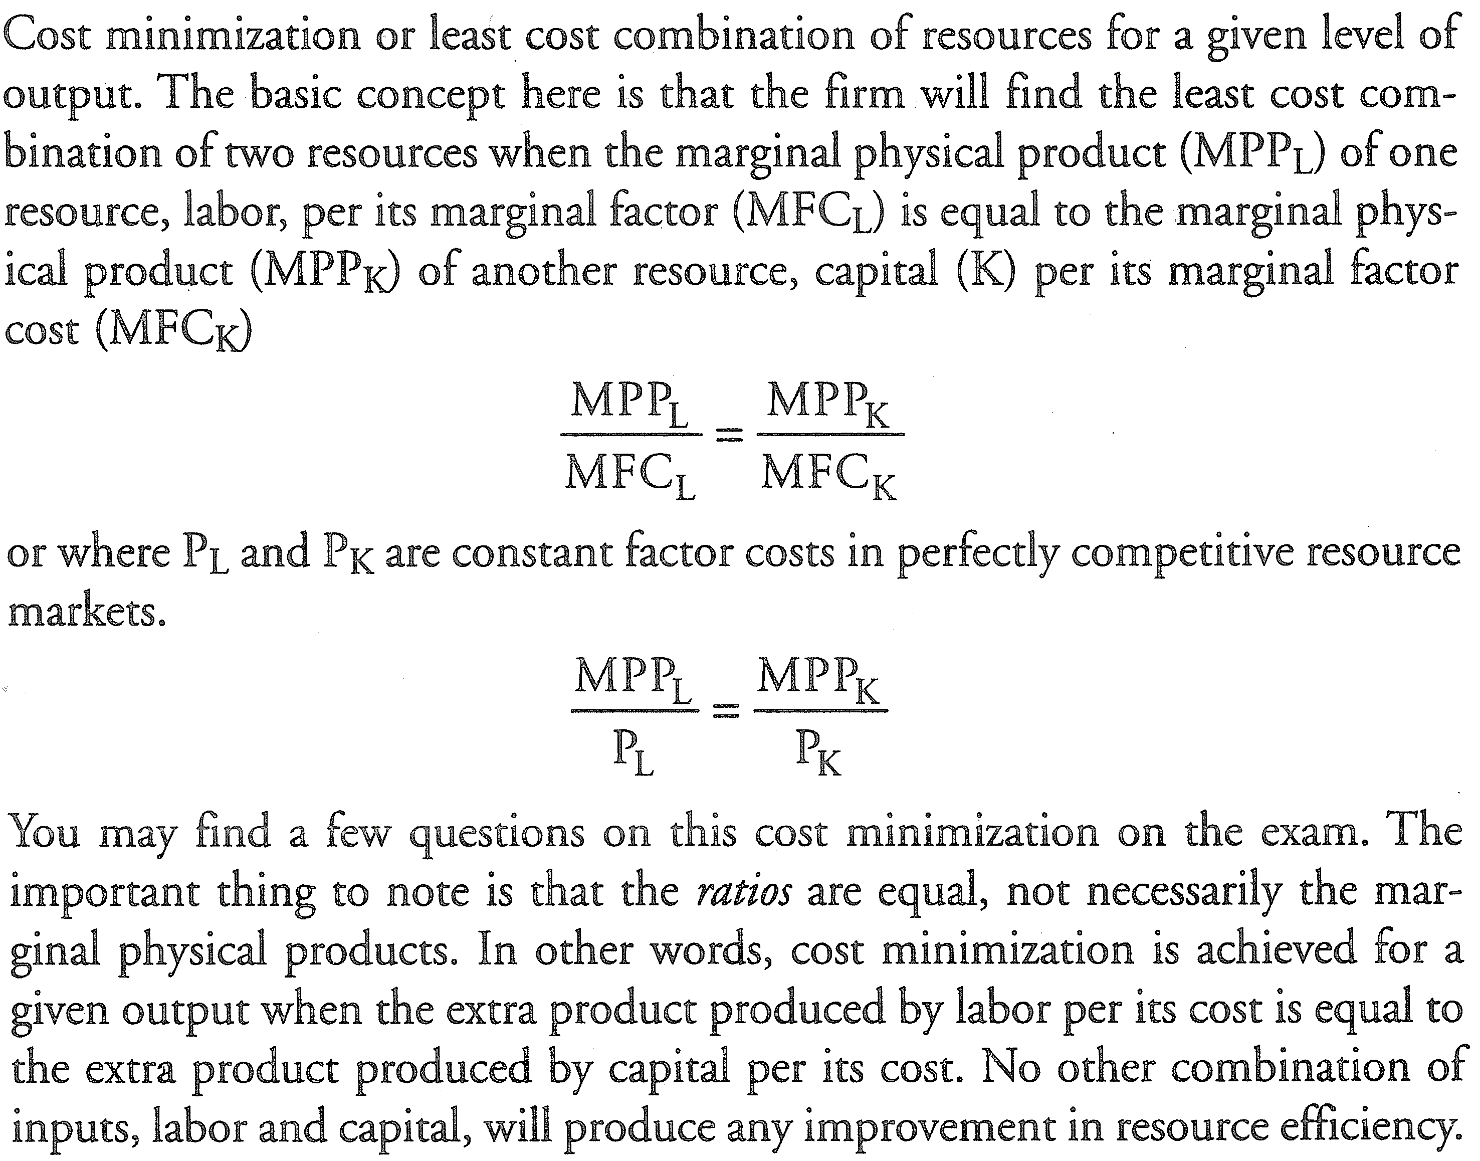 Machine generated alternative text: Cost minimization or least COSt combination Of resources for a give n I eve 1 Of output The basic concept here is that the firm will find the least cost com- bination of 0 resources when the marginal physical product (MPPL) of one resource, labor, per its marginal factor (MFCL) is equal to the marginal phys- ical product (MPPK) of another resource, capital ( K) per marginal factor cost (MFCK) MPPL MPPK MFCL MFCK or where PL an d PK a re constant factor COStS in perfectly competitive resource marketso MPPL MPPK You may find a few questions on this cost minimization on the exam 。 The important thing to note is that the 仍 are equal, not necessarily the mar- ginal physical products, In Other WO rds , cost minimization is ach i eve d for a give n output when the extra product produced by labor per its cost is equal to the ext r a product produced by capital per its cost. NO Other combination Of inputs, labor and capital, Will produce any improvement in resource efficiency.